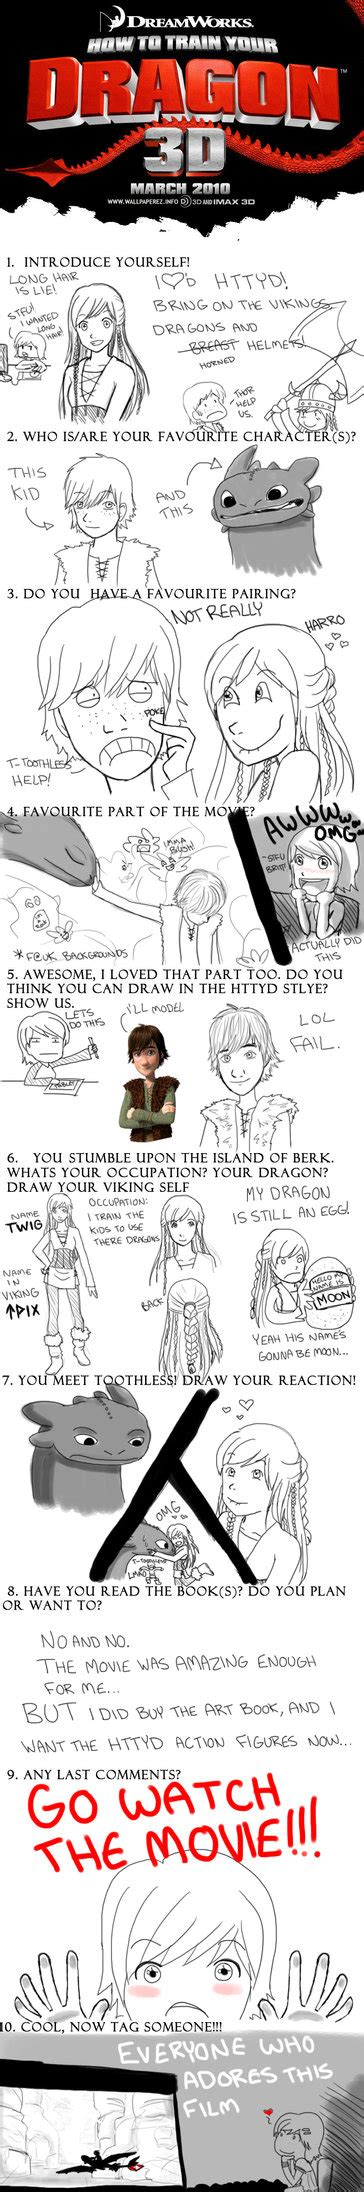 How To Train Your Dragon Memes - how to train your dragon meme by rainowls on deviantart